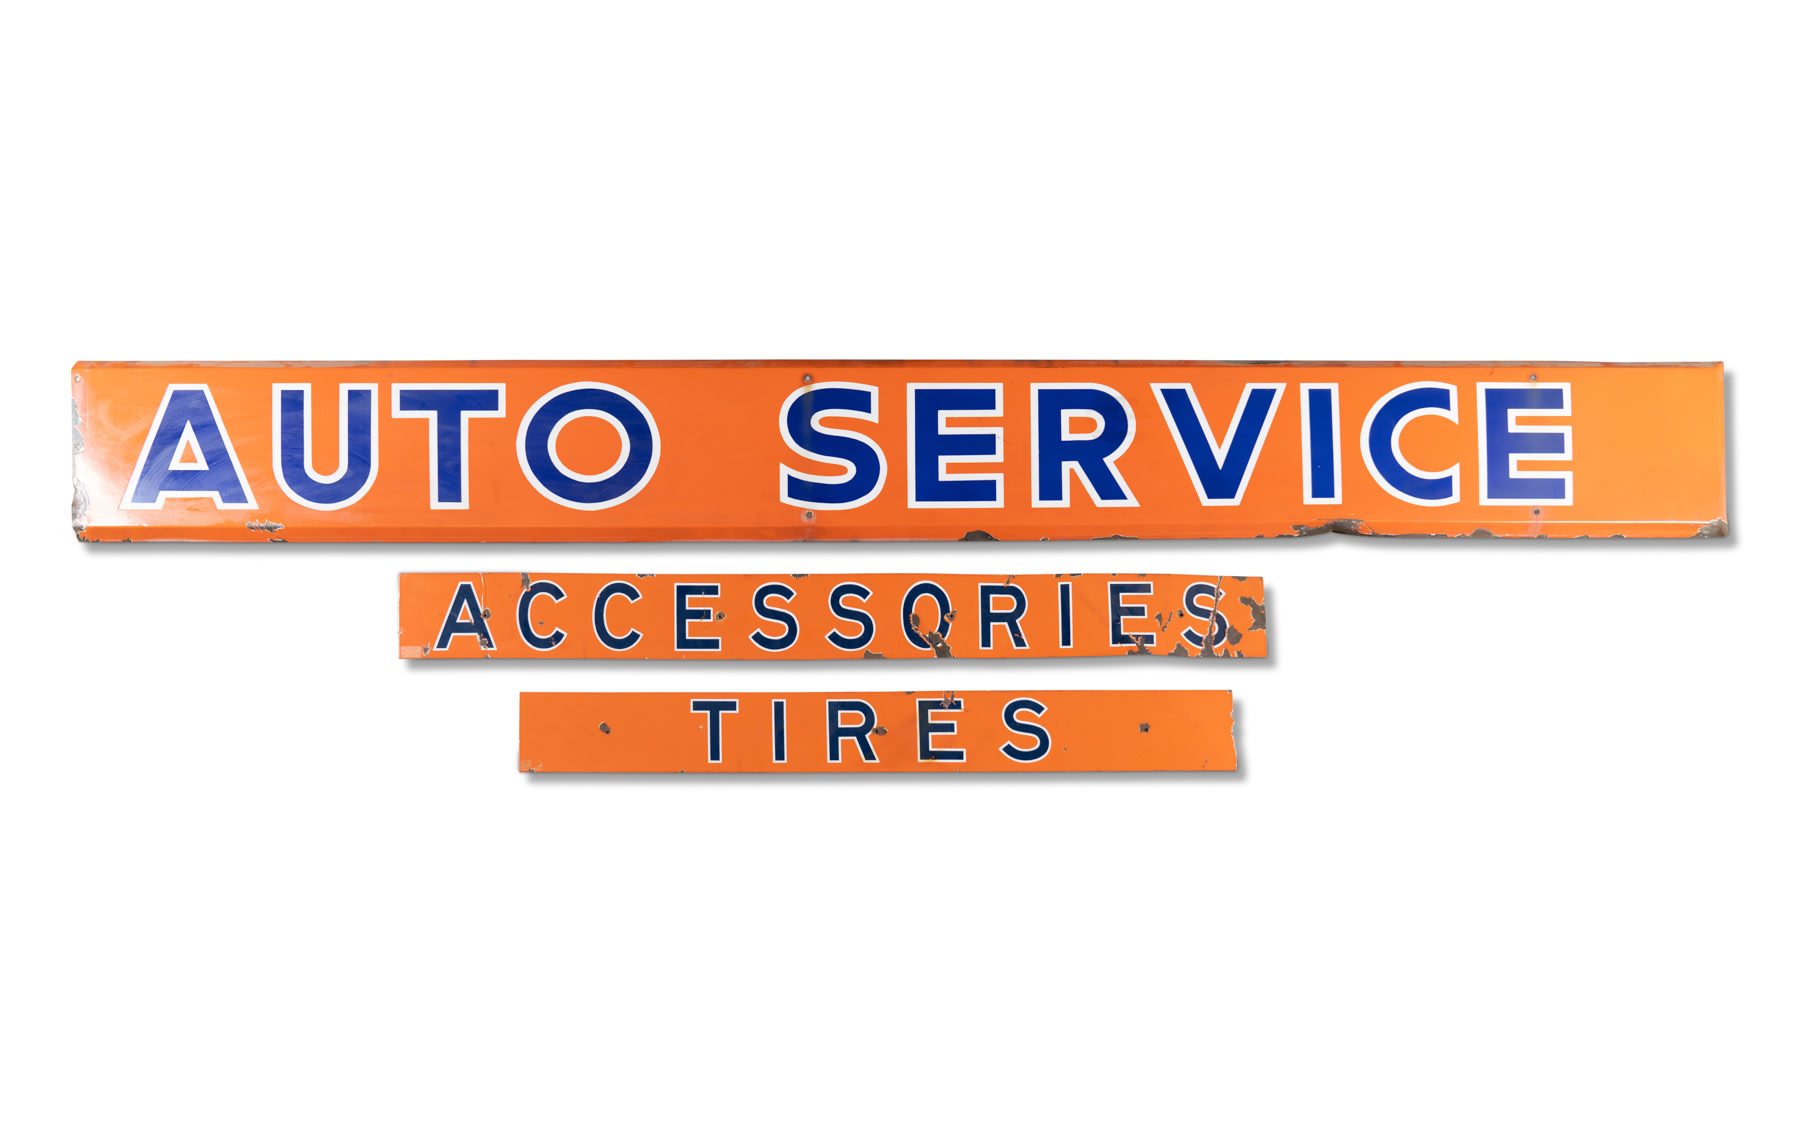 Auto Service, Accessories, and Tires Signs